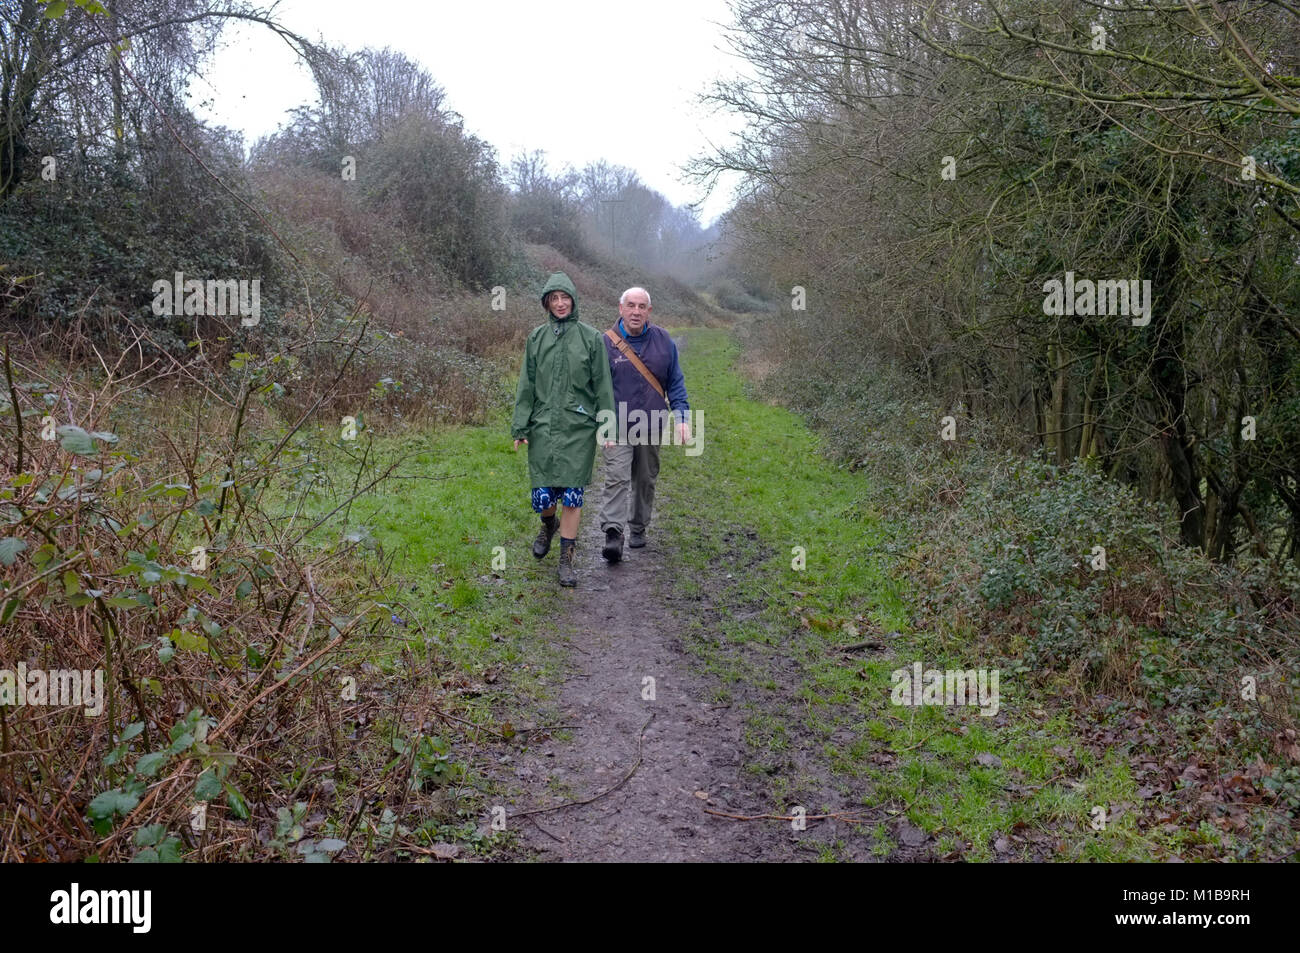 Father and daughter walking. - Stock Image